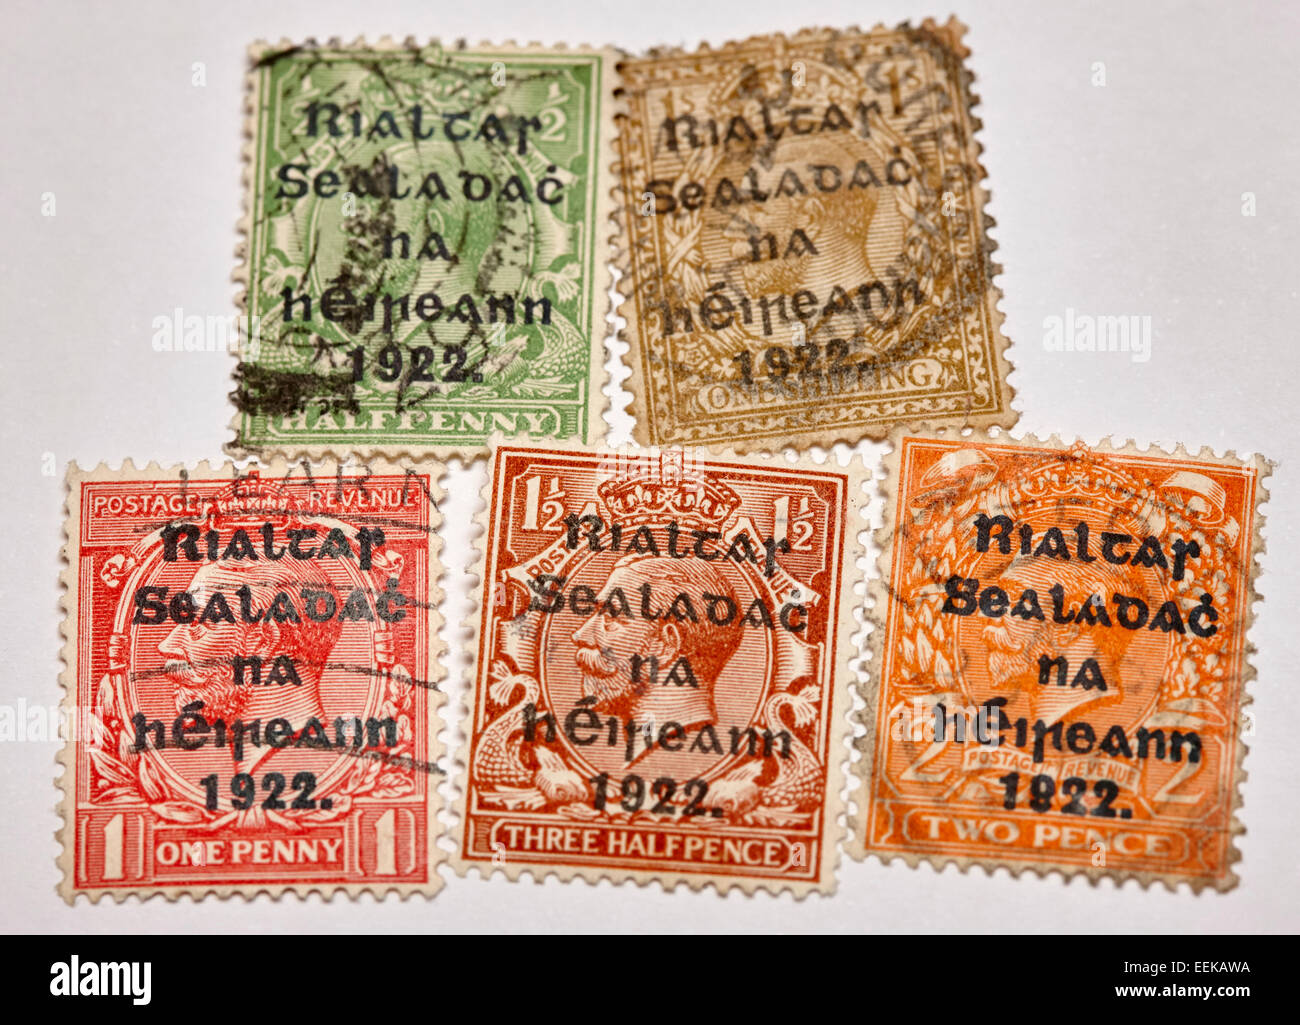 historic vintage old irish stamps british george V stamps overprinted by the provisional government of ireland in - Stock Image